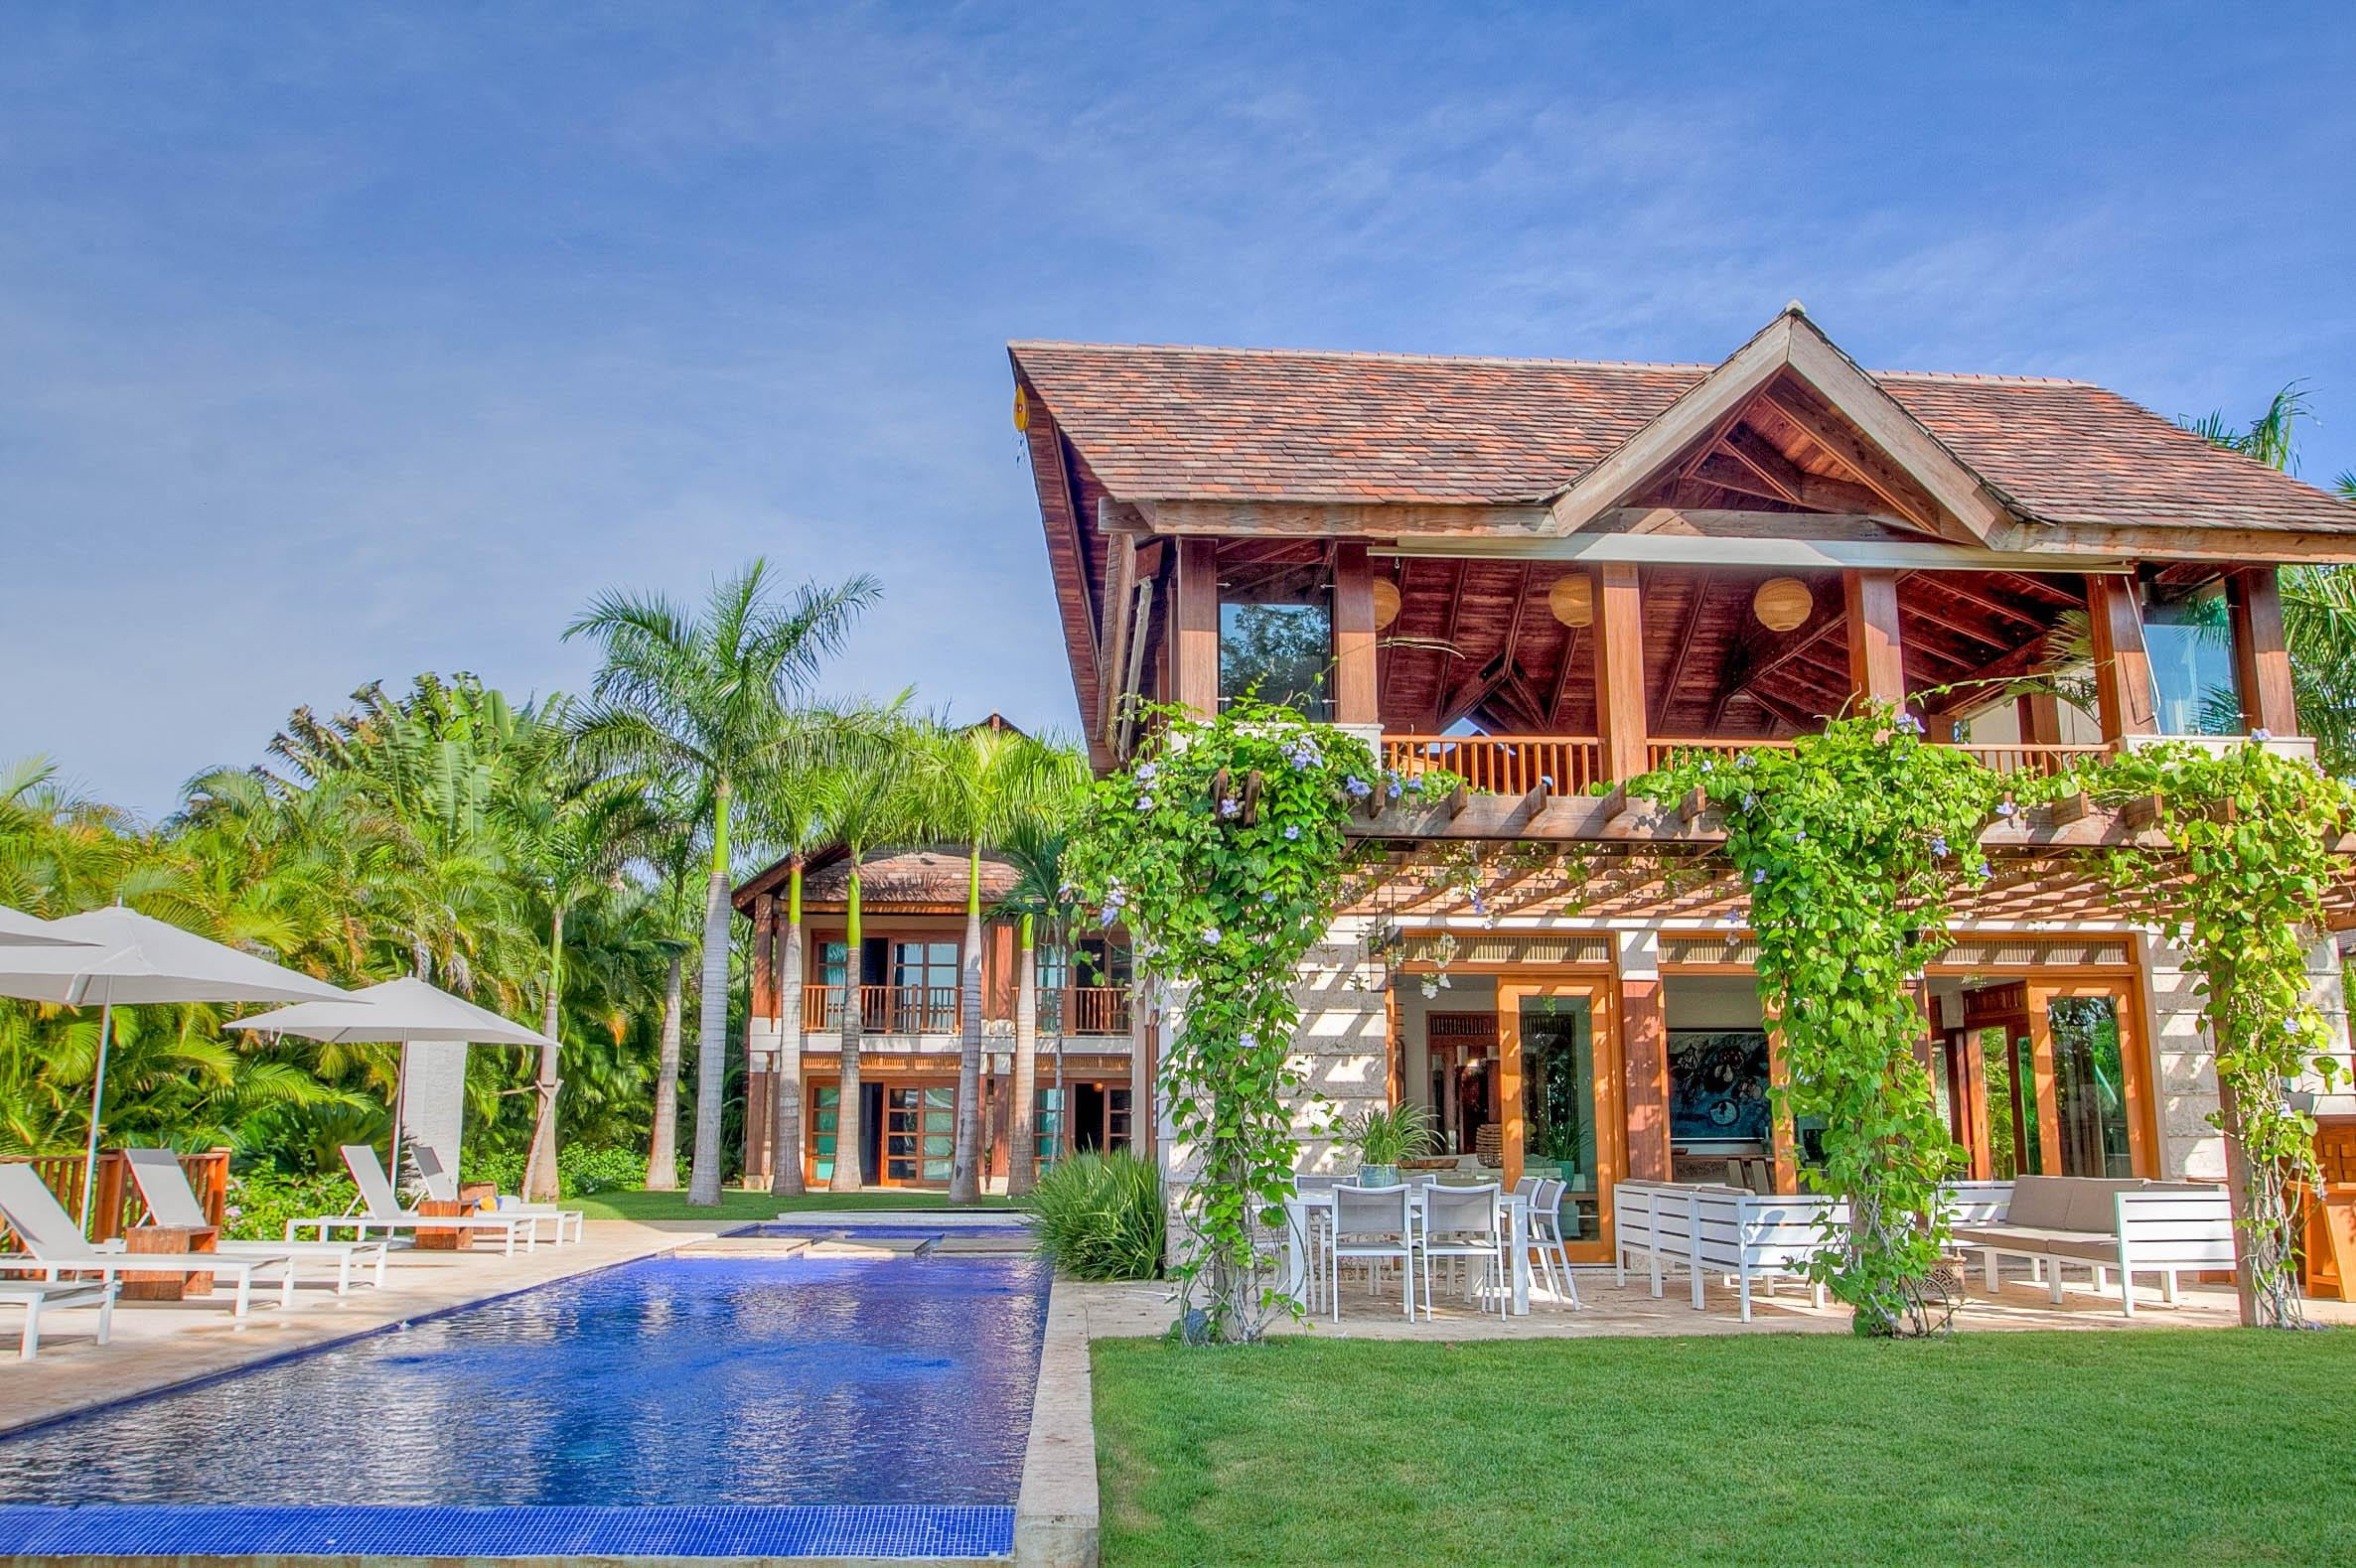 Property Image 1 - Exquisite, Spacious Villa with a Pool and Jacuzzi